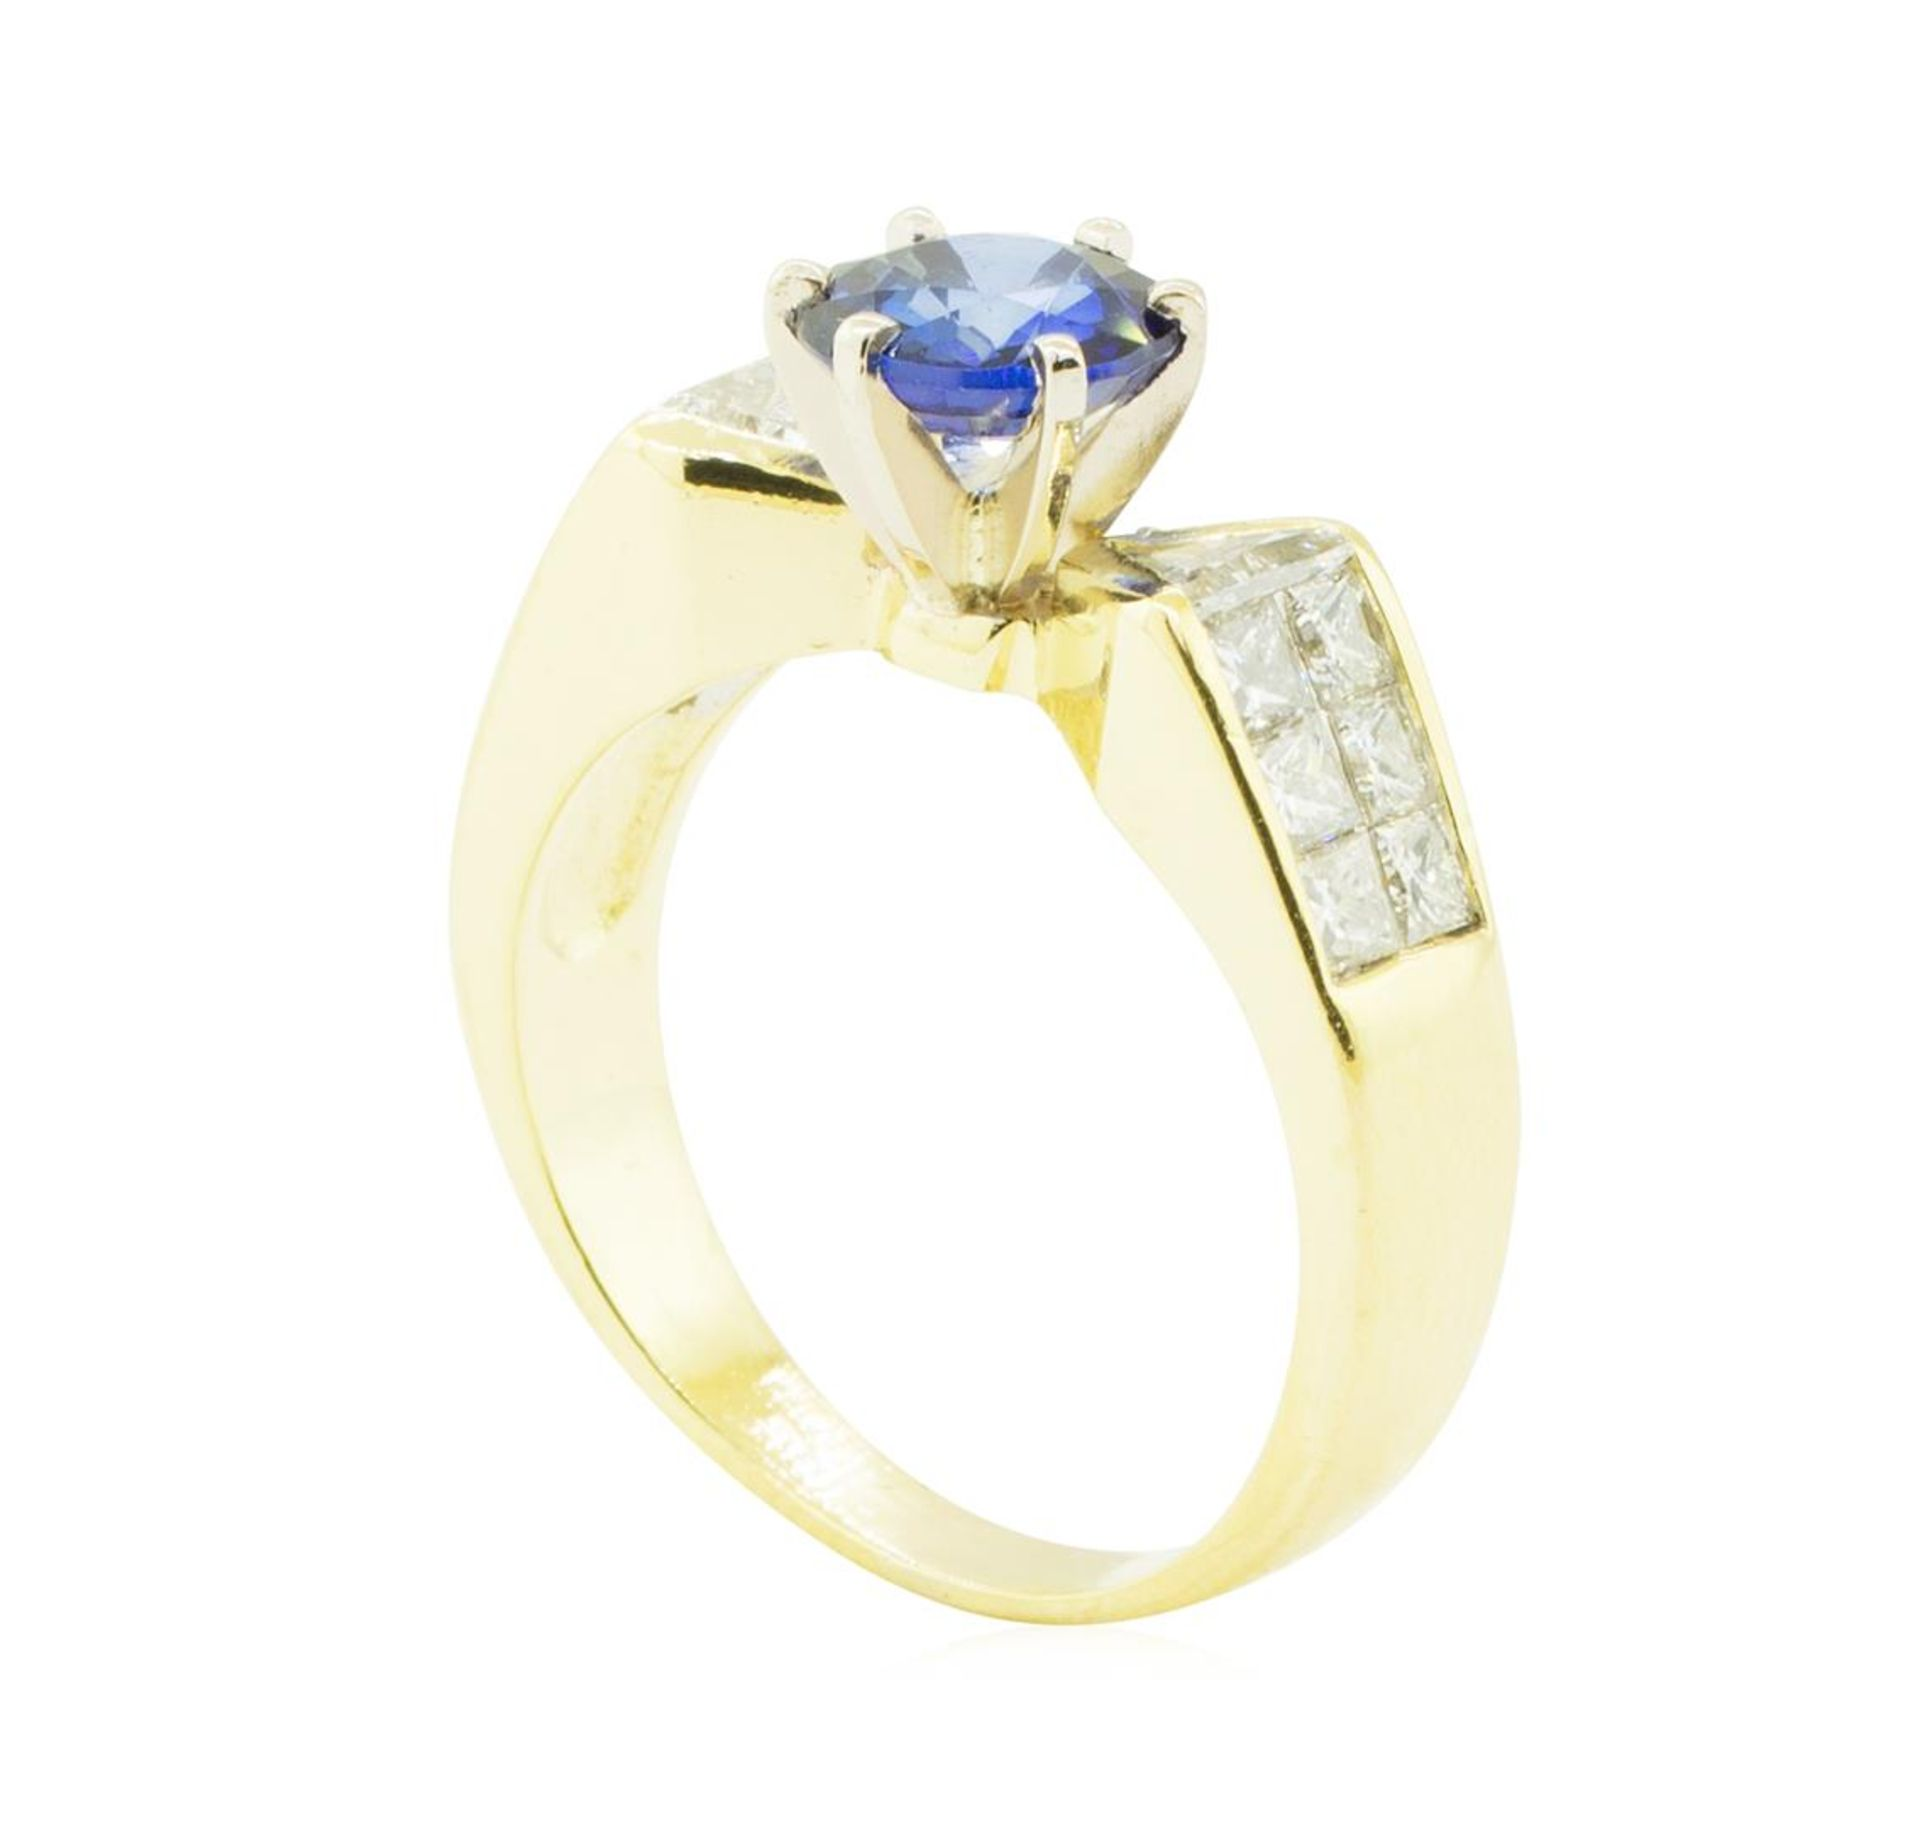 2.20 ctw Blue Sapphire and Diamond Ring - 18KT Yellow Gold - Image 4 of 4